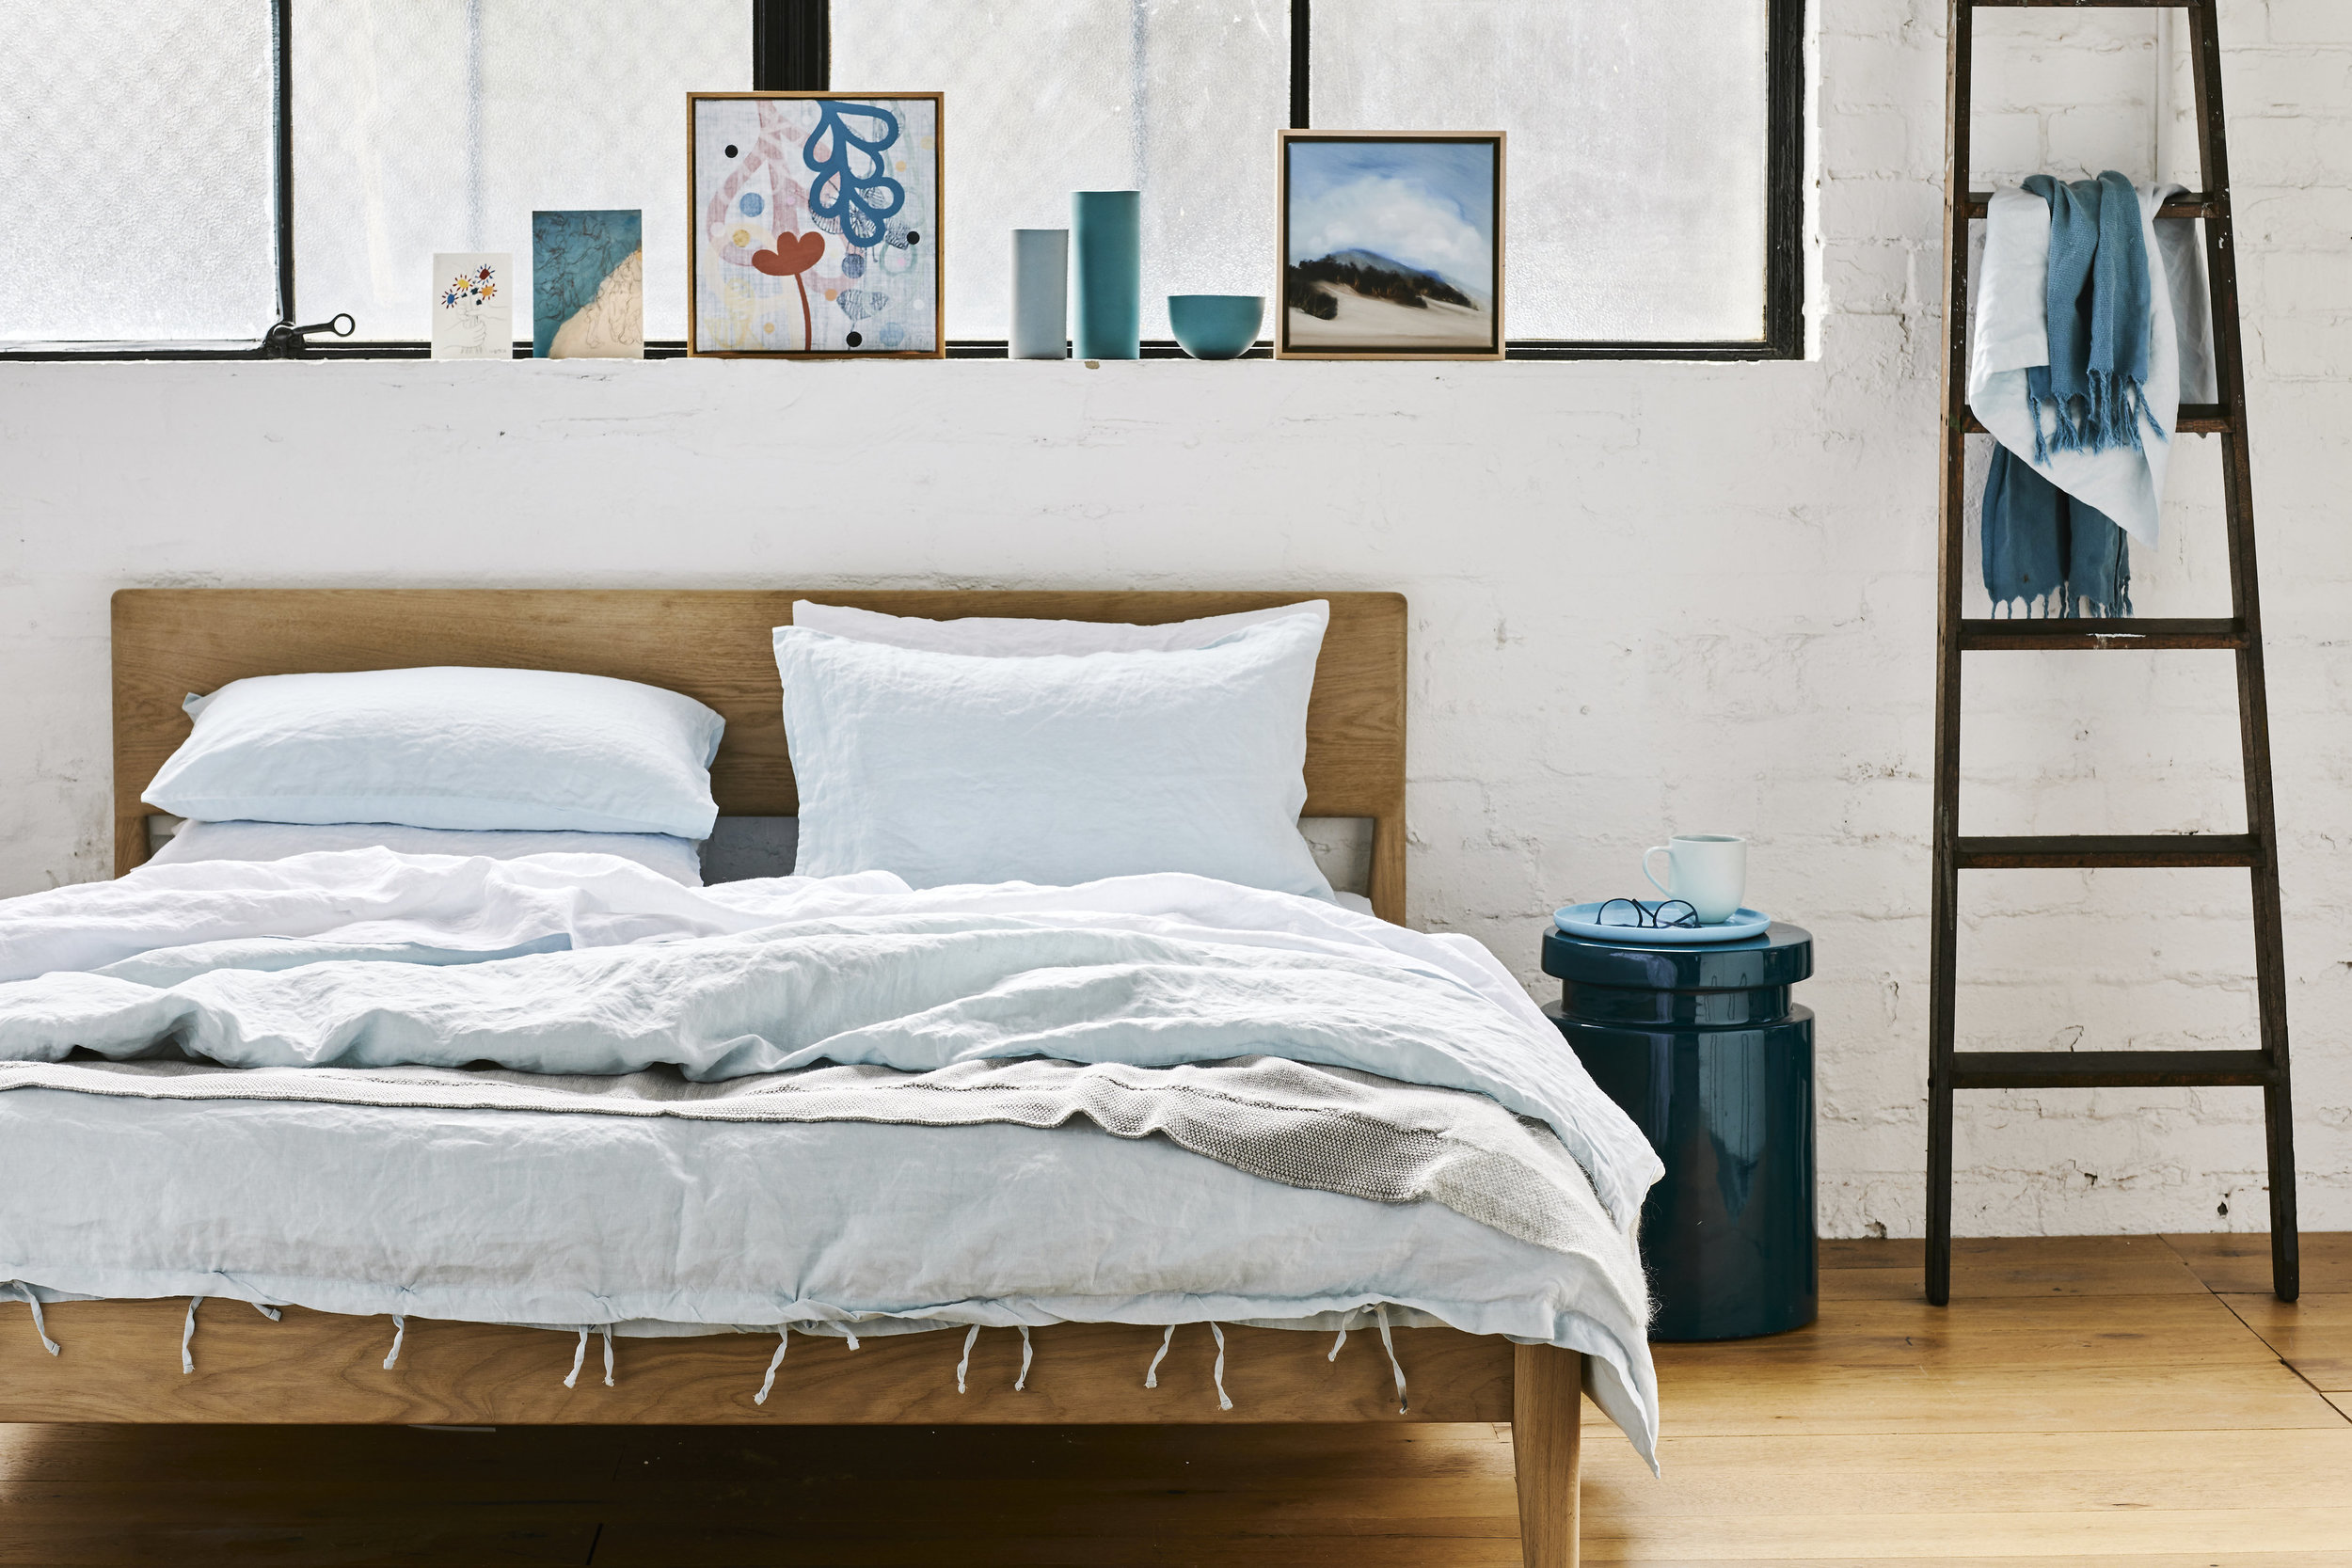 St Marc is a bed linen brand based in Melbourne. The product is French Linen stone washed to soften in a lovely range of colours.  We needed to capture the quality and range of colours in a lifestyle environment when they launched the brand.   www.stmarc.com.au